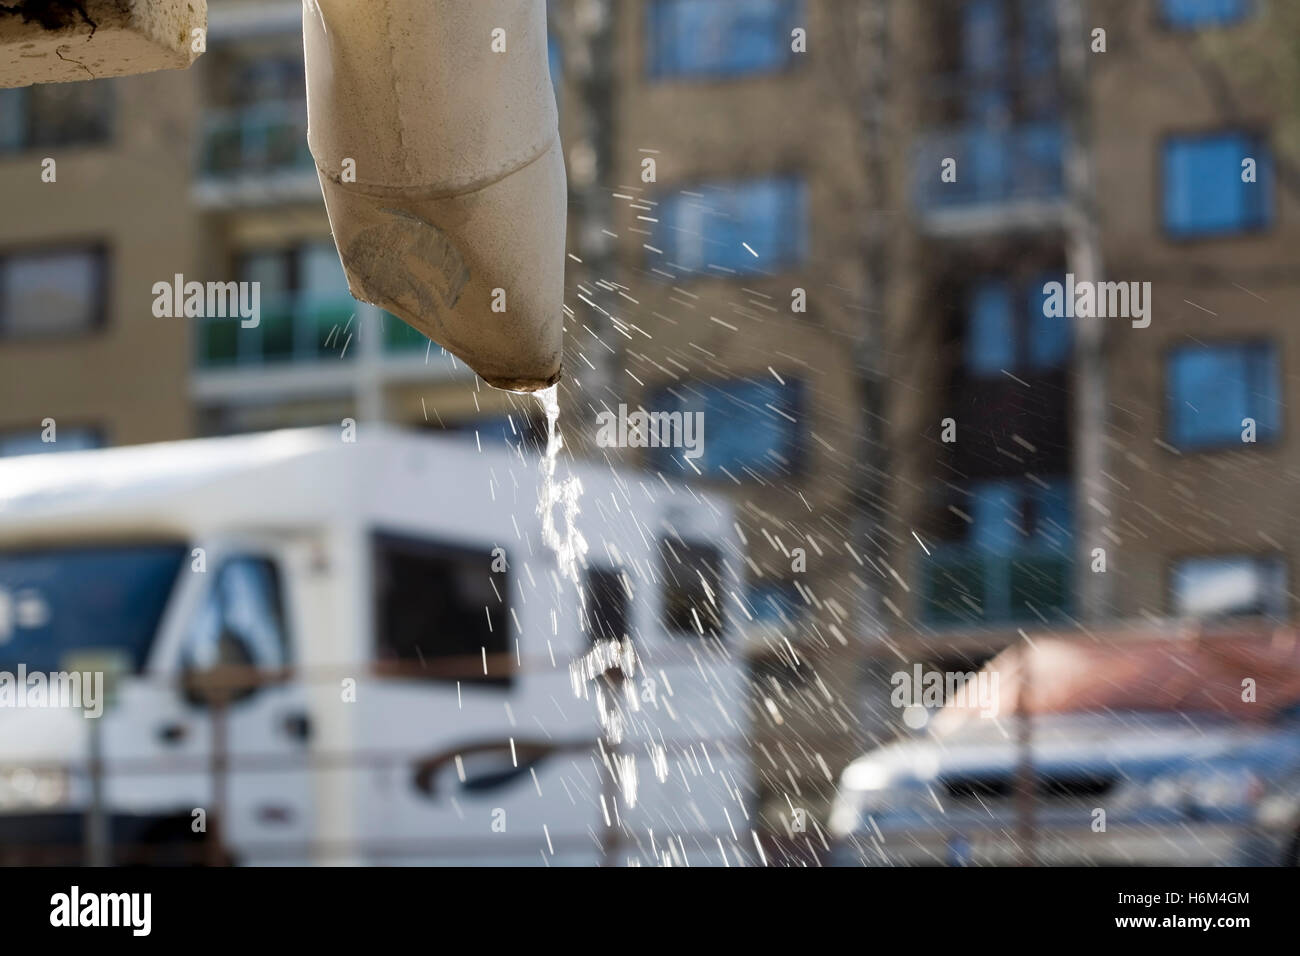 water dripping down the drainpipe - Stock Image